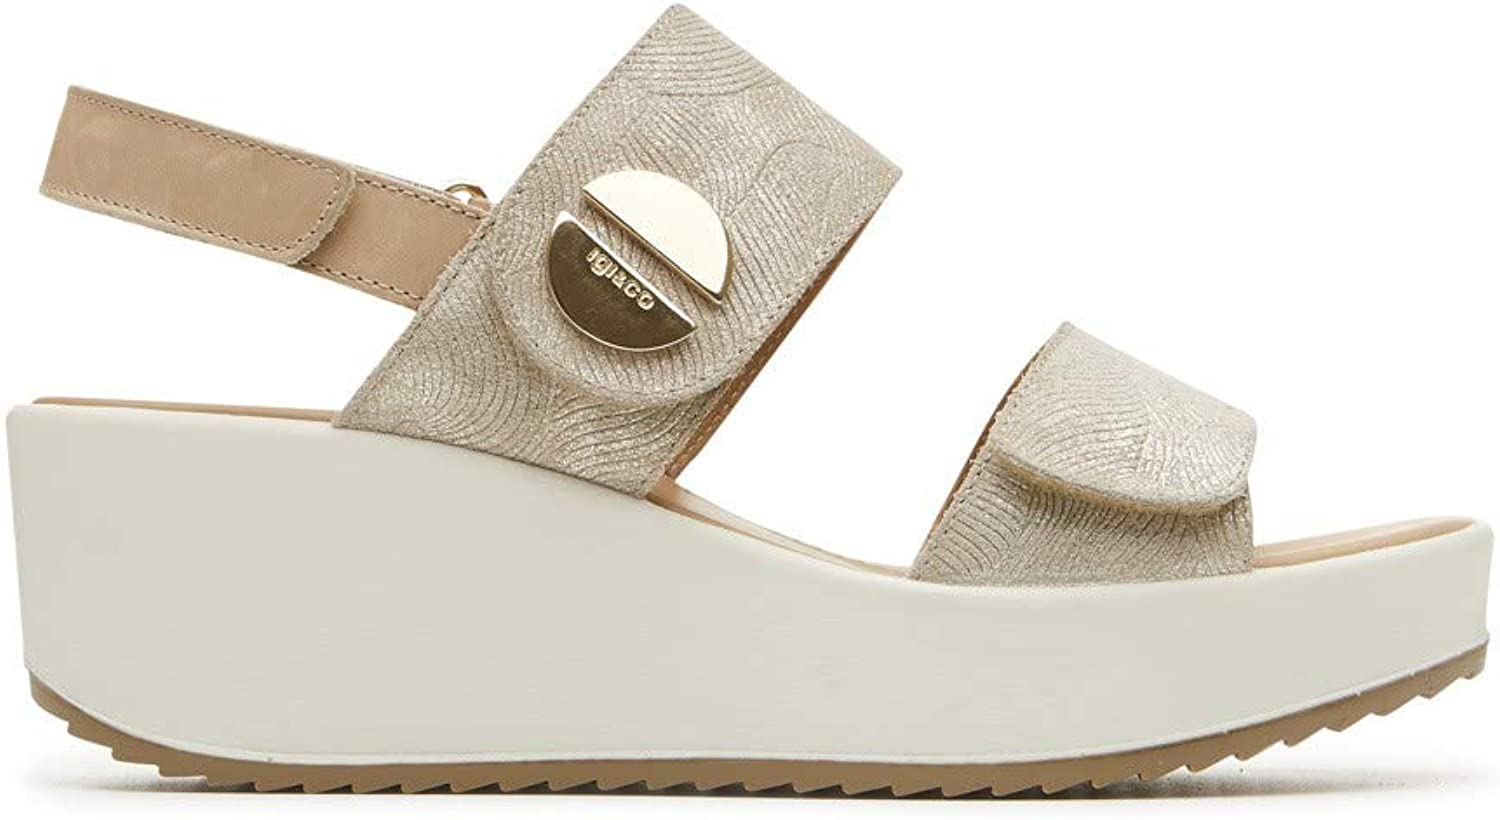 IGI&CO 3173399 Women's Wedge Sandal in Platinum Printed Laminated Leather Made in